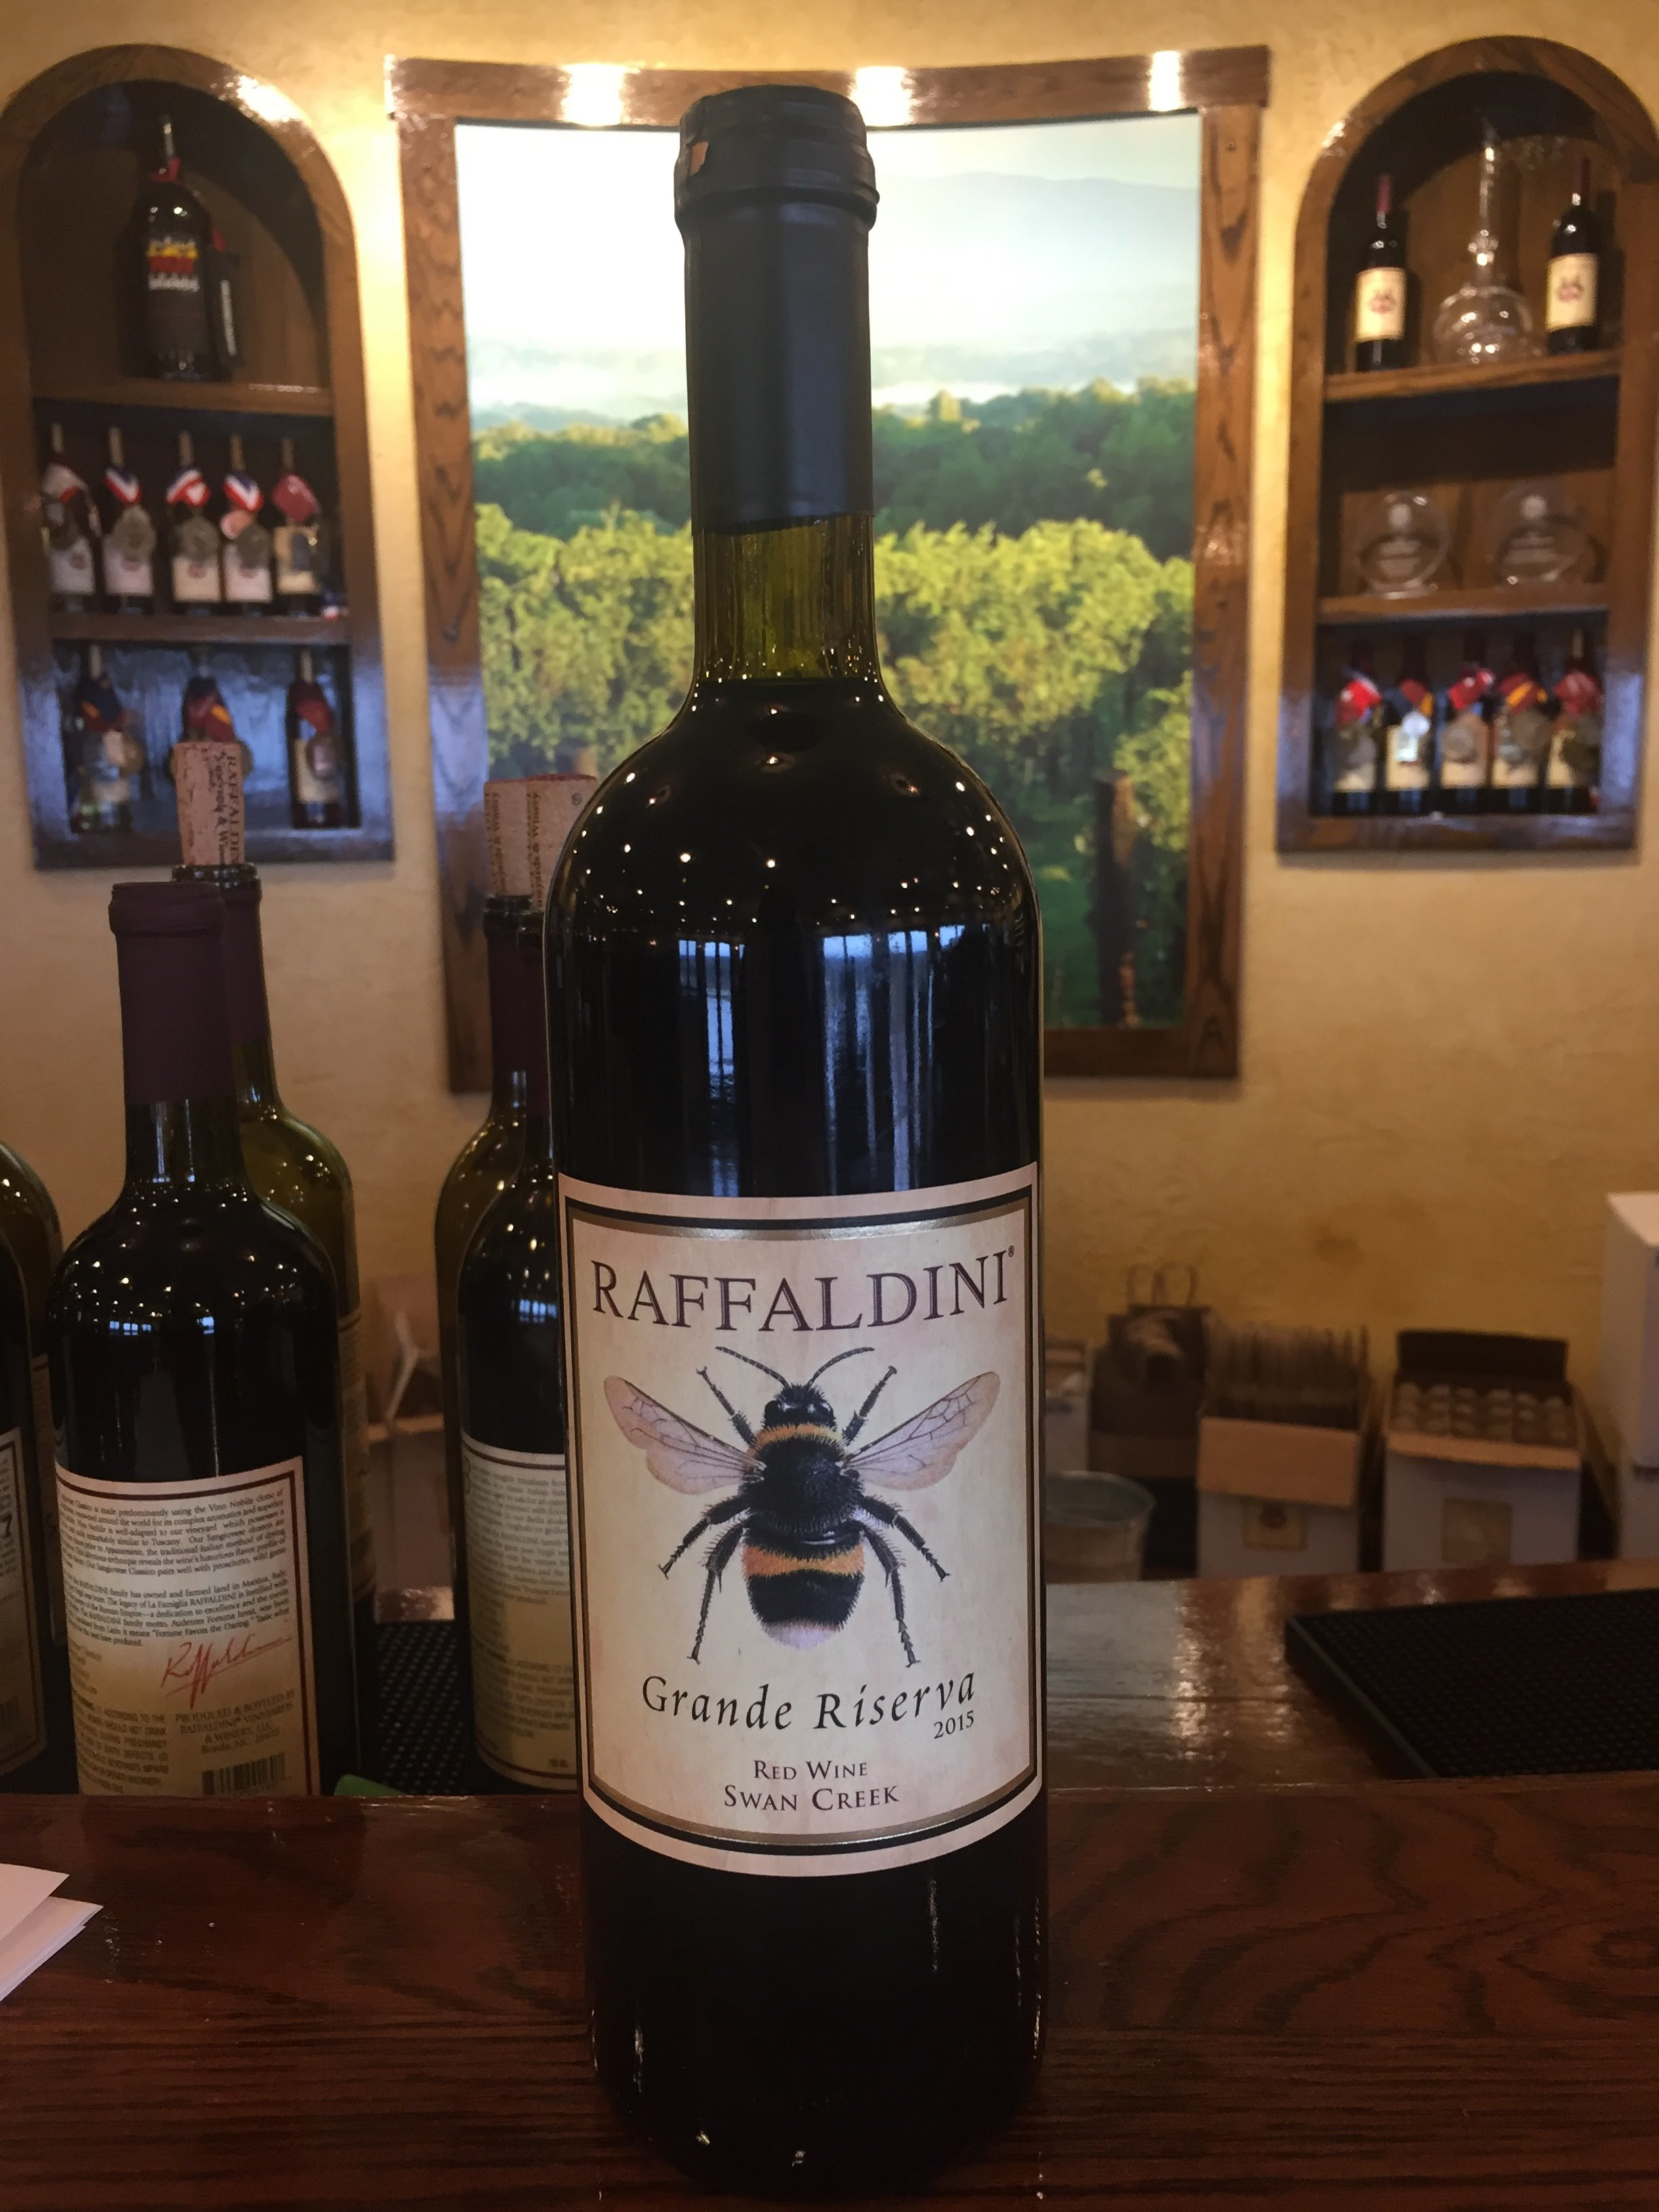 "A bottle of their 2015 Grande Reserva goes for $55. While we didn't get to taste this wine, we loved the story behind it: Because their wings are so small and don't move very fast, bumblebees shouldn't be able to fly...except through sheer determination and will. Much like Raffaldini, with sheer determination and will, they battle the difficult climate of NC to ""fly"" and produce top-quality wines. (#slowclap #uglycry)"